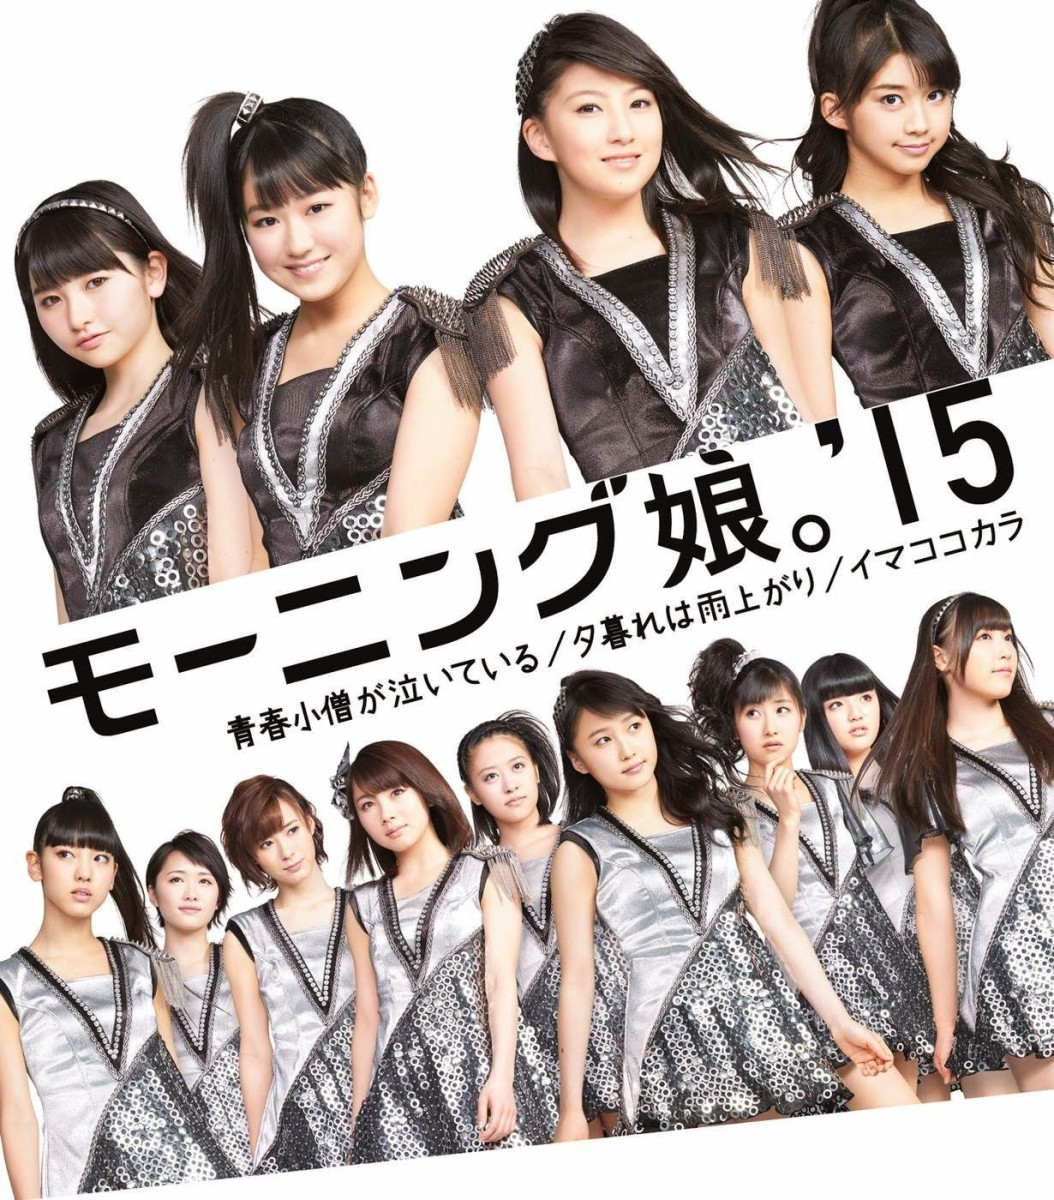 A Look Back At the 58th Single of Pop Music Group Morning Musume